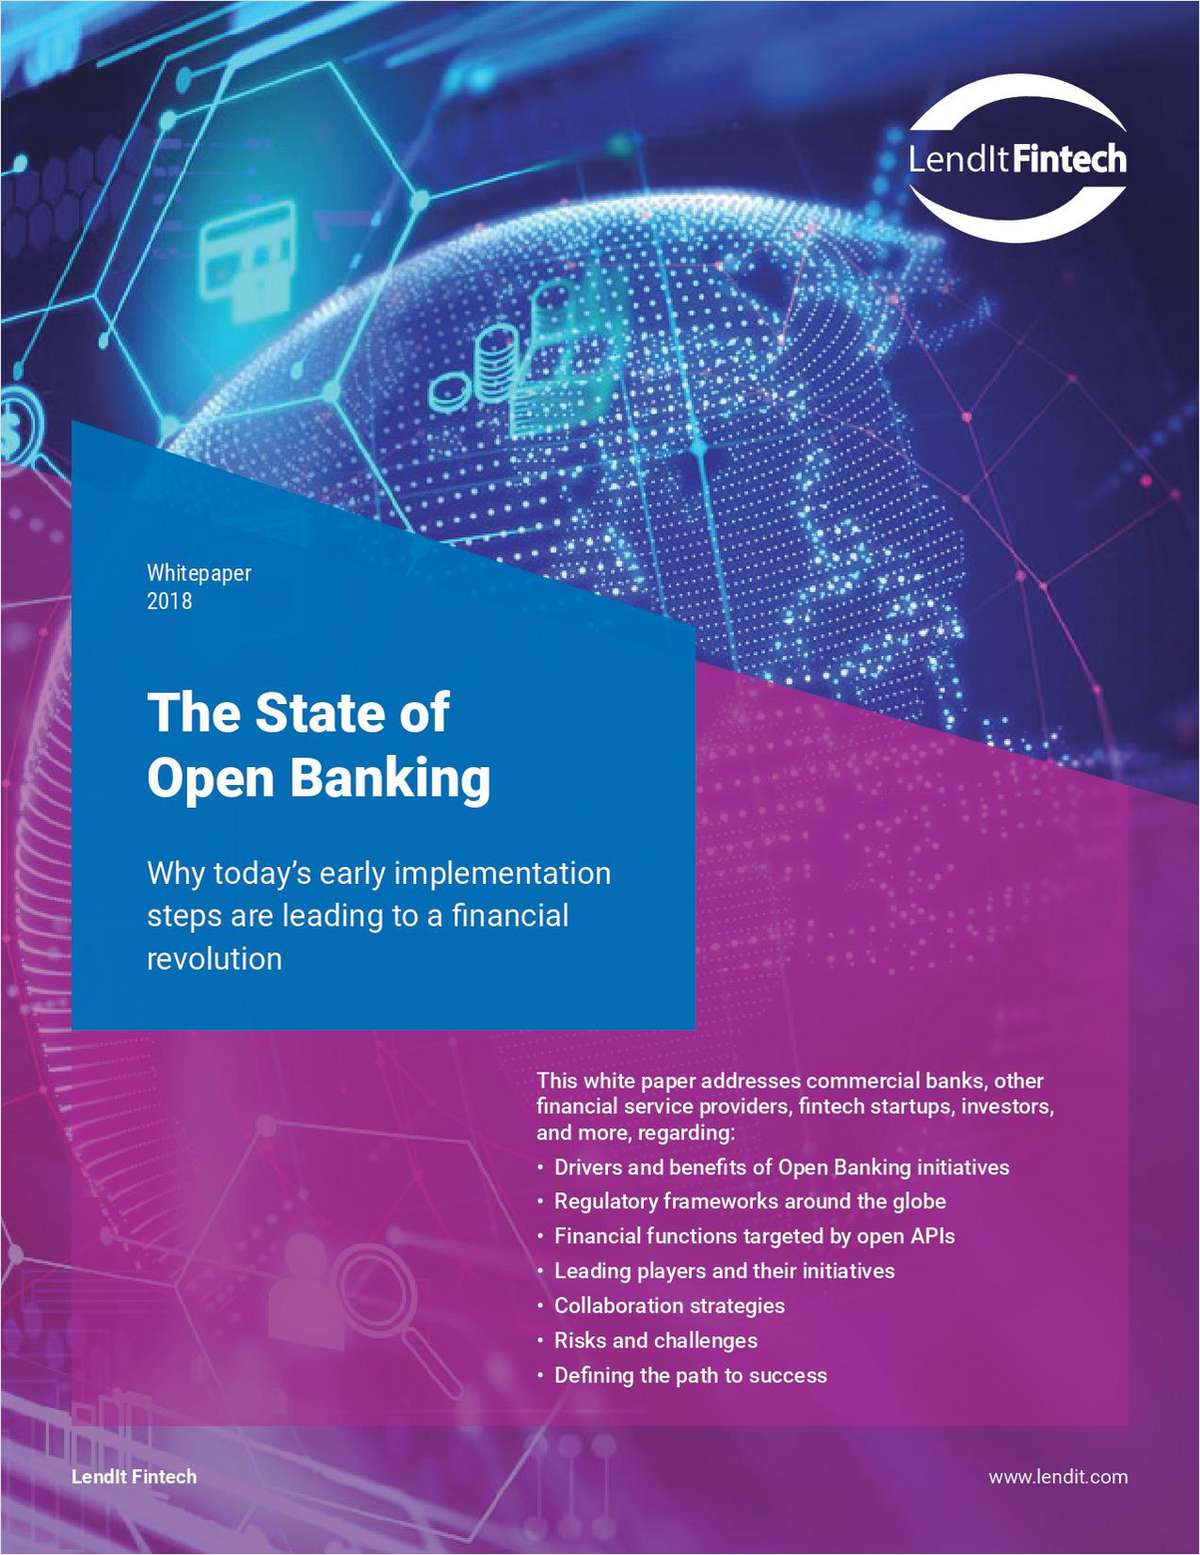 The State of Open Banking